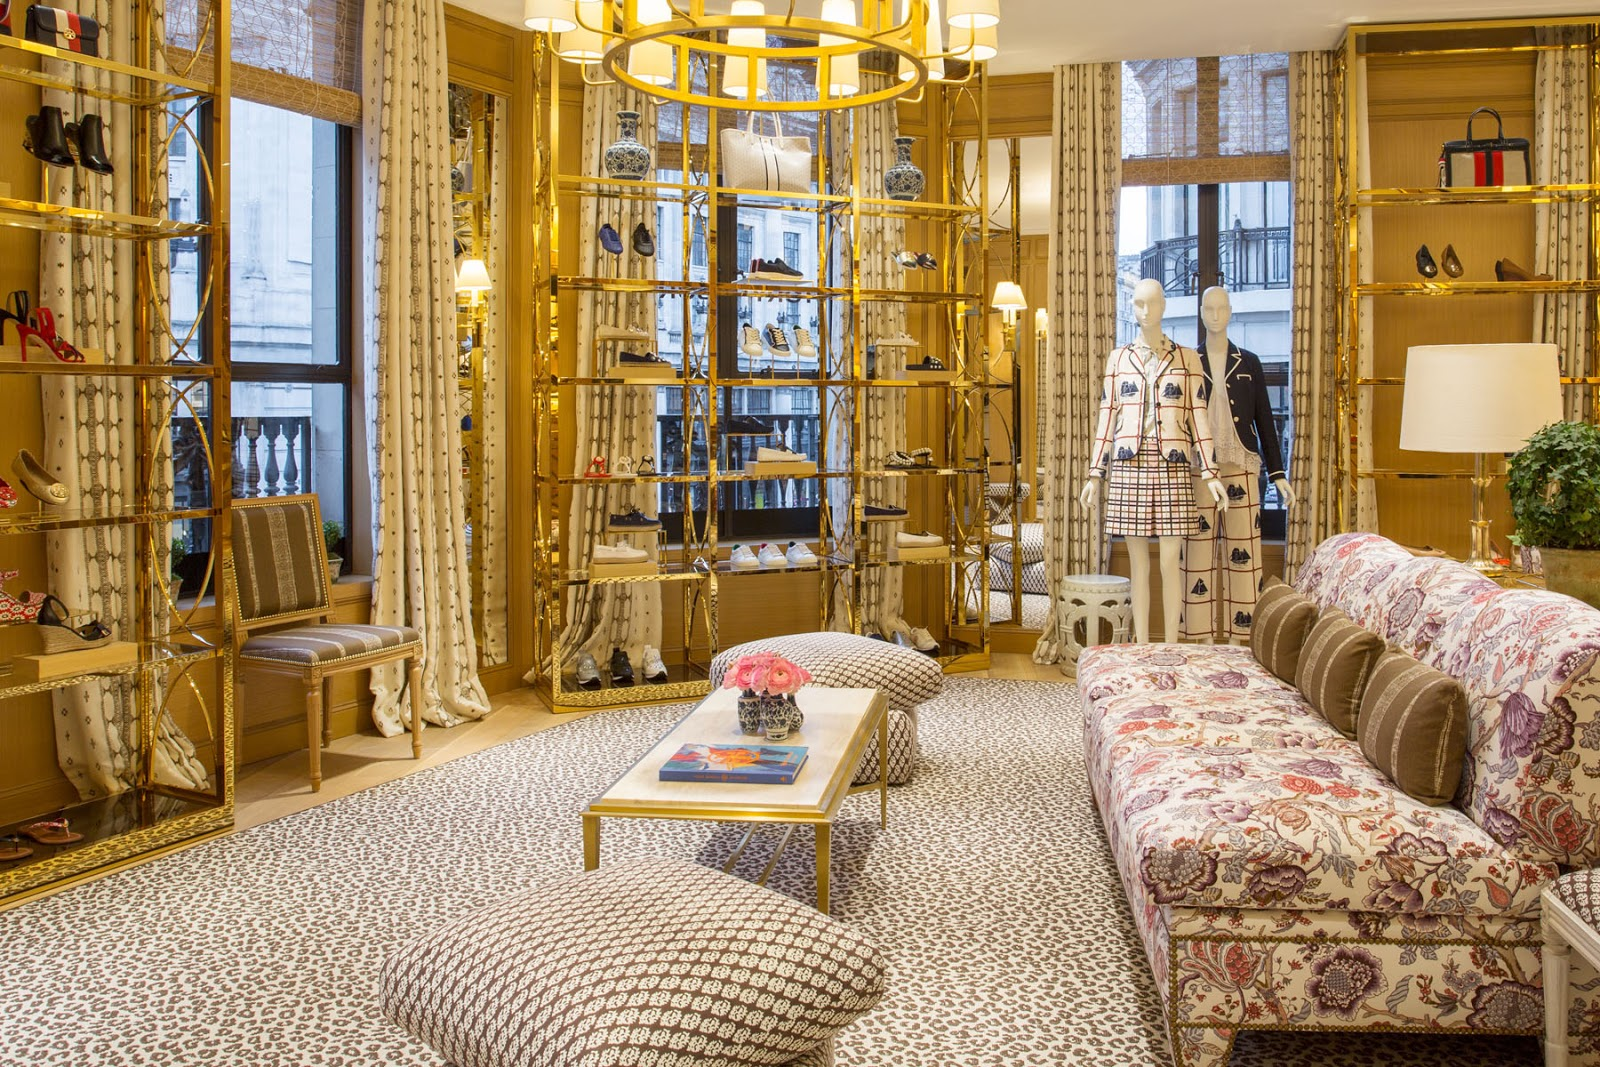 Tory Burch Is Expanding Their Footprint In Europe By Opening The New Regent  Street Boutique. The Brand Is No Stranger To The Area, With Their Flagship  On ... Part 54